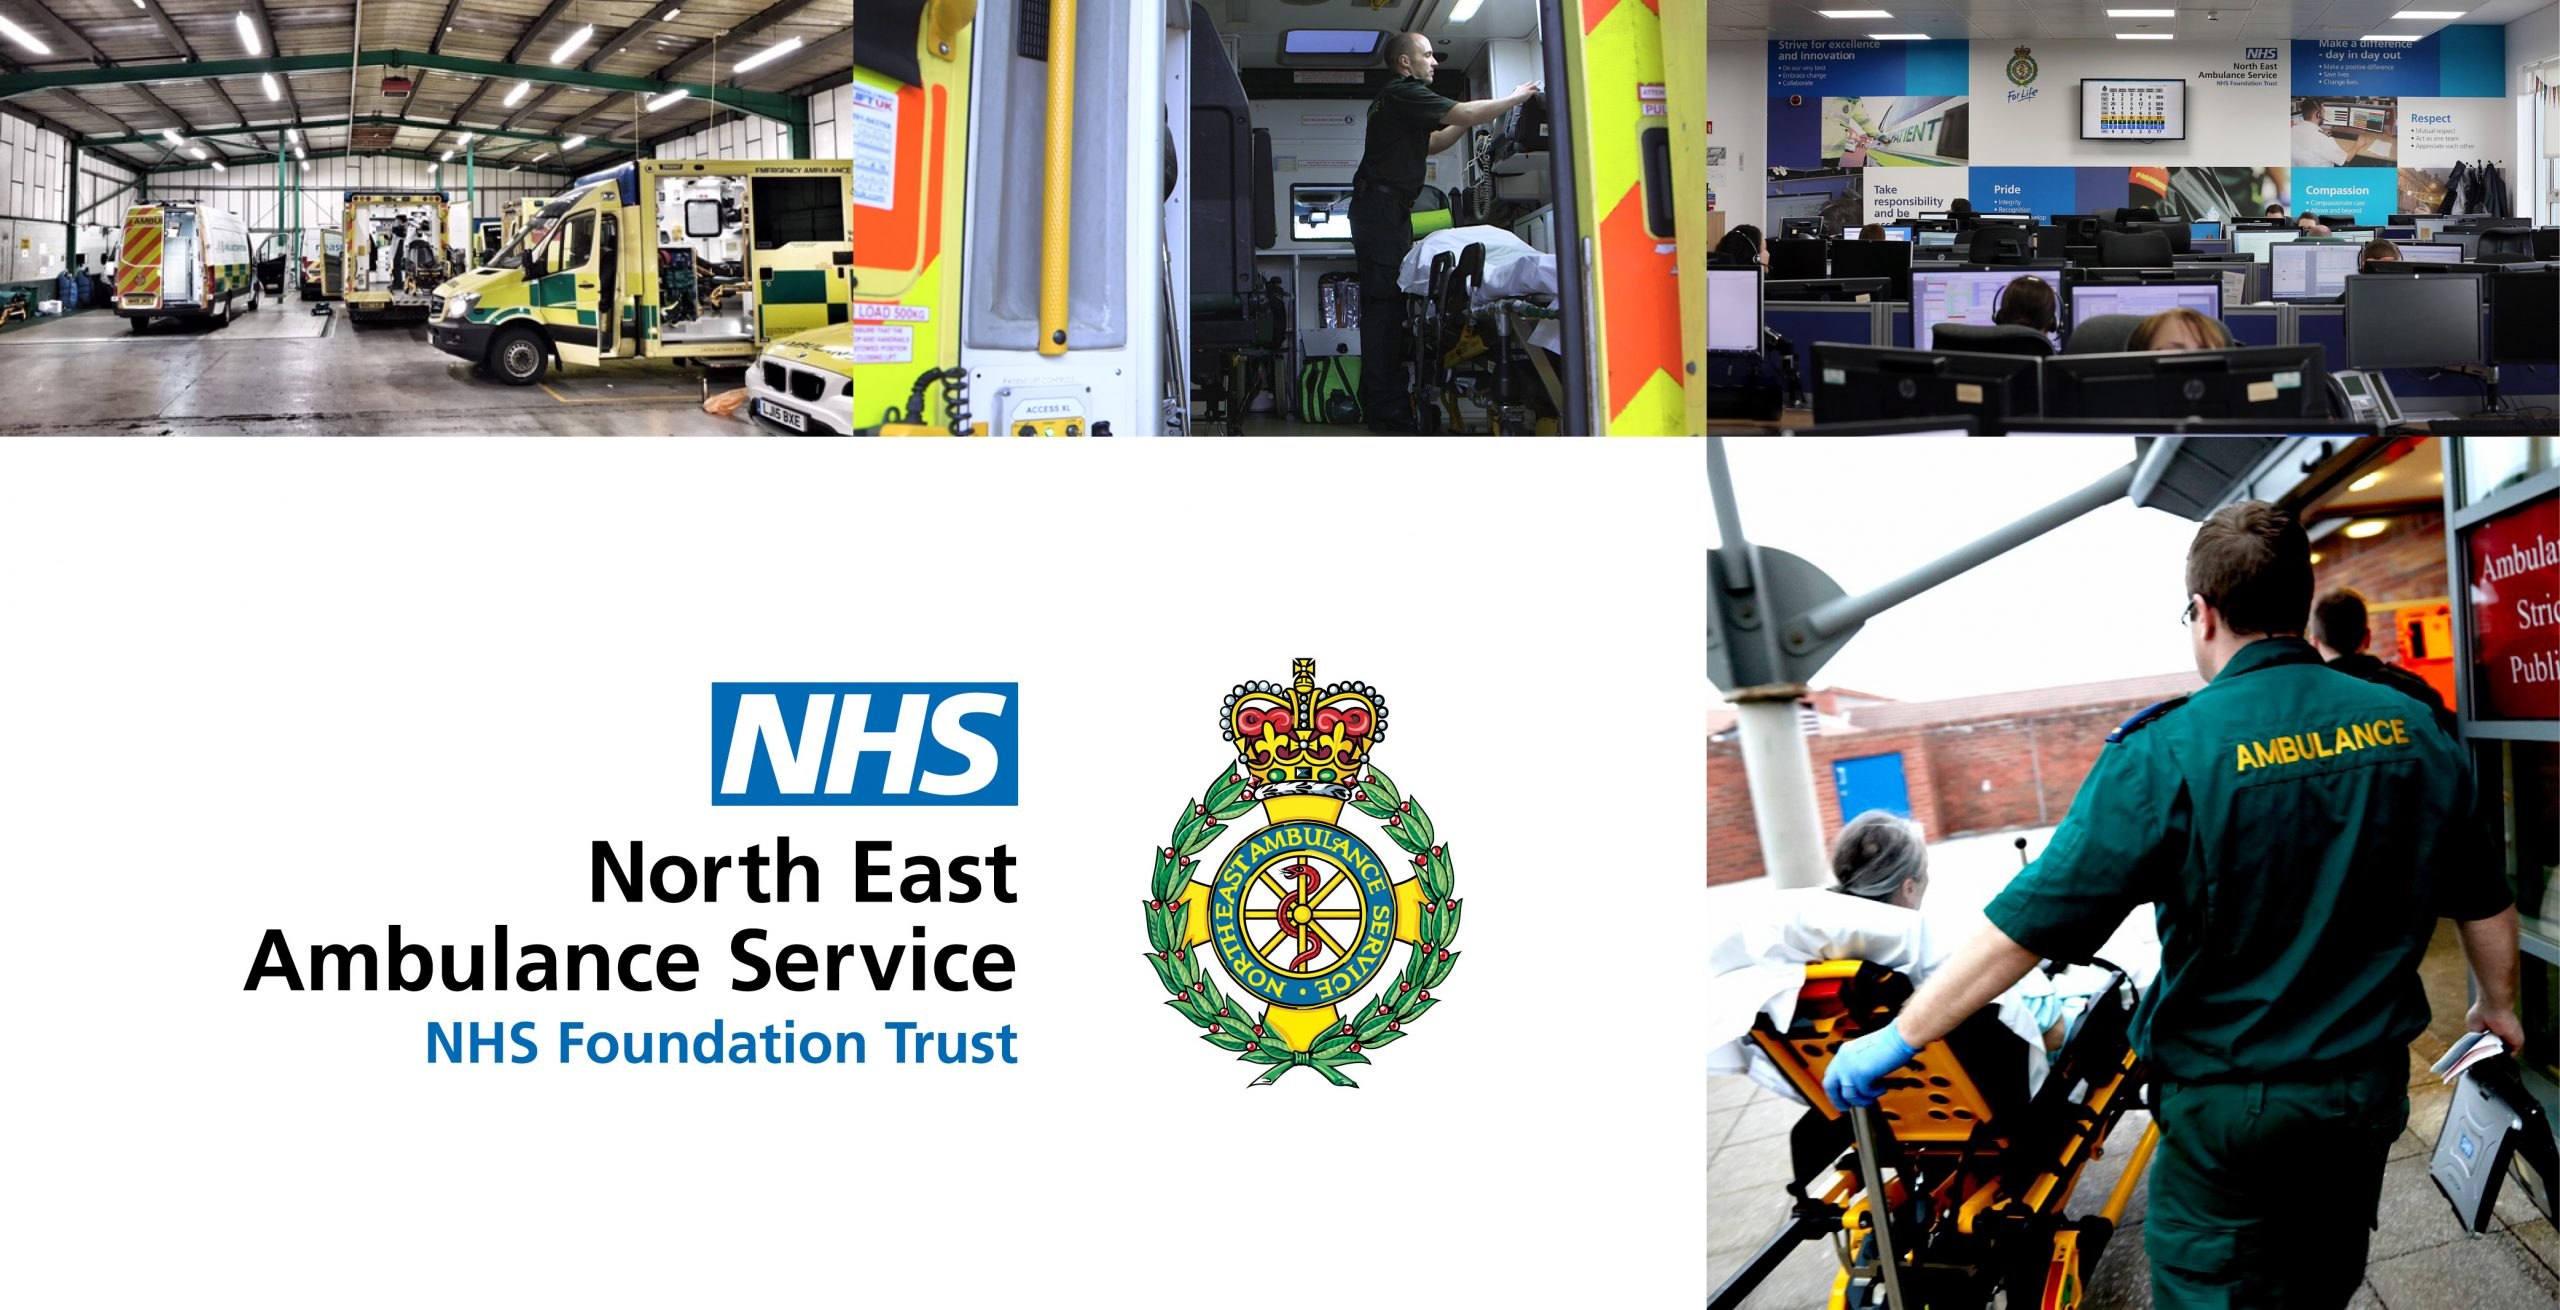 North East Ambulance Service Montage 2